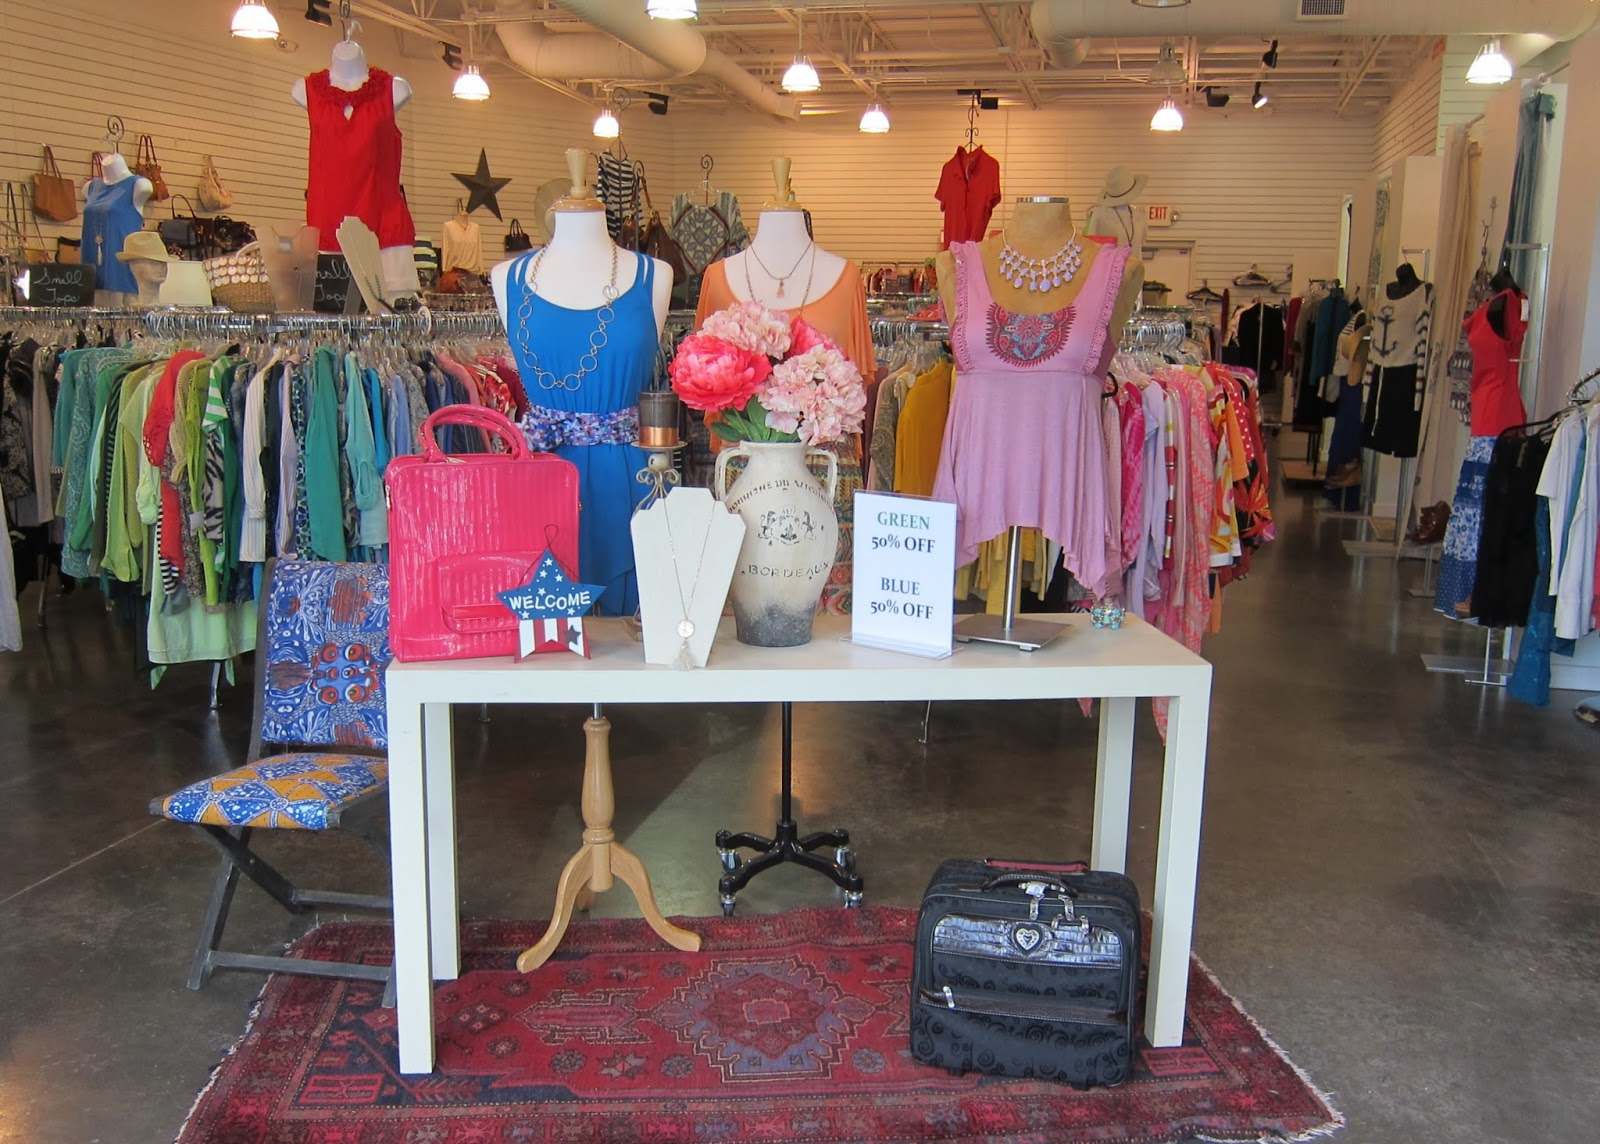 Talbots An Upscale Women S Clothing Store